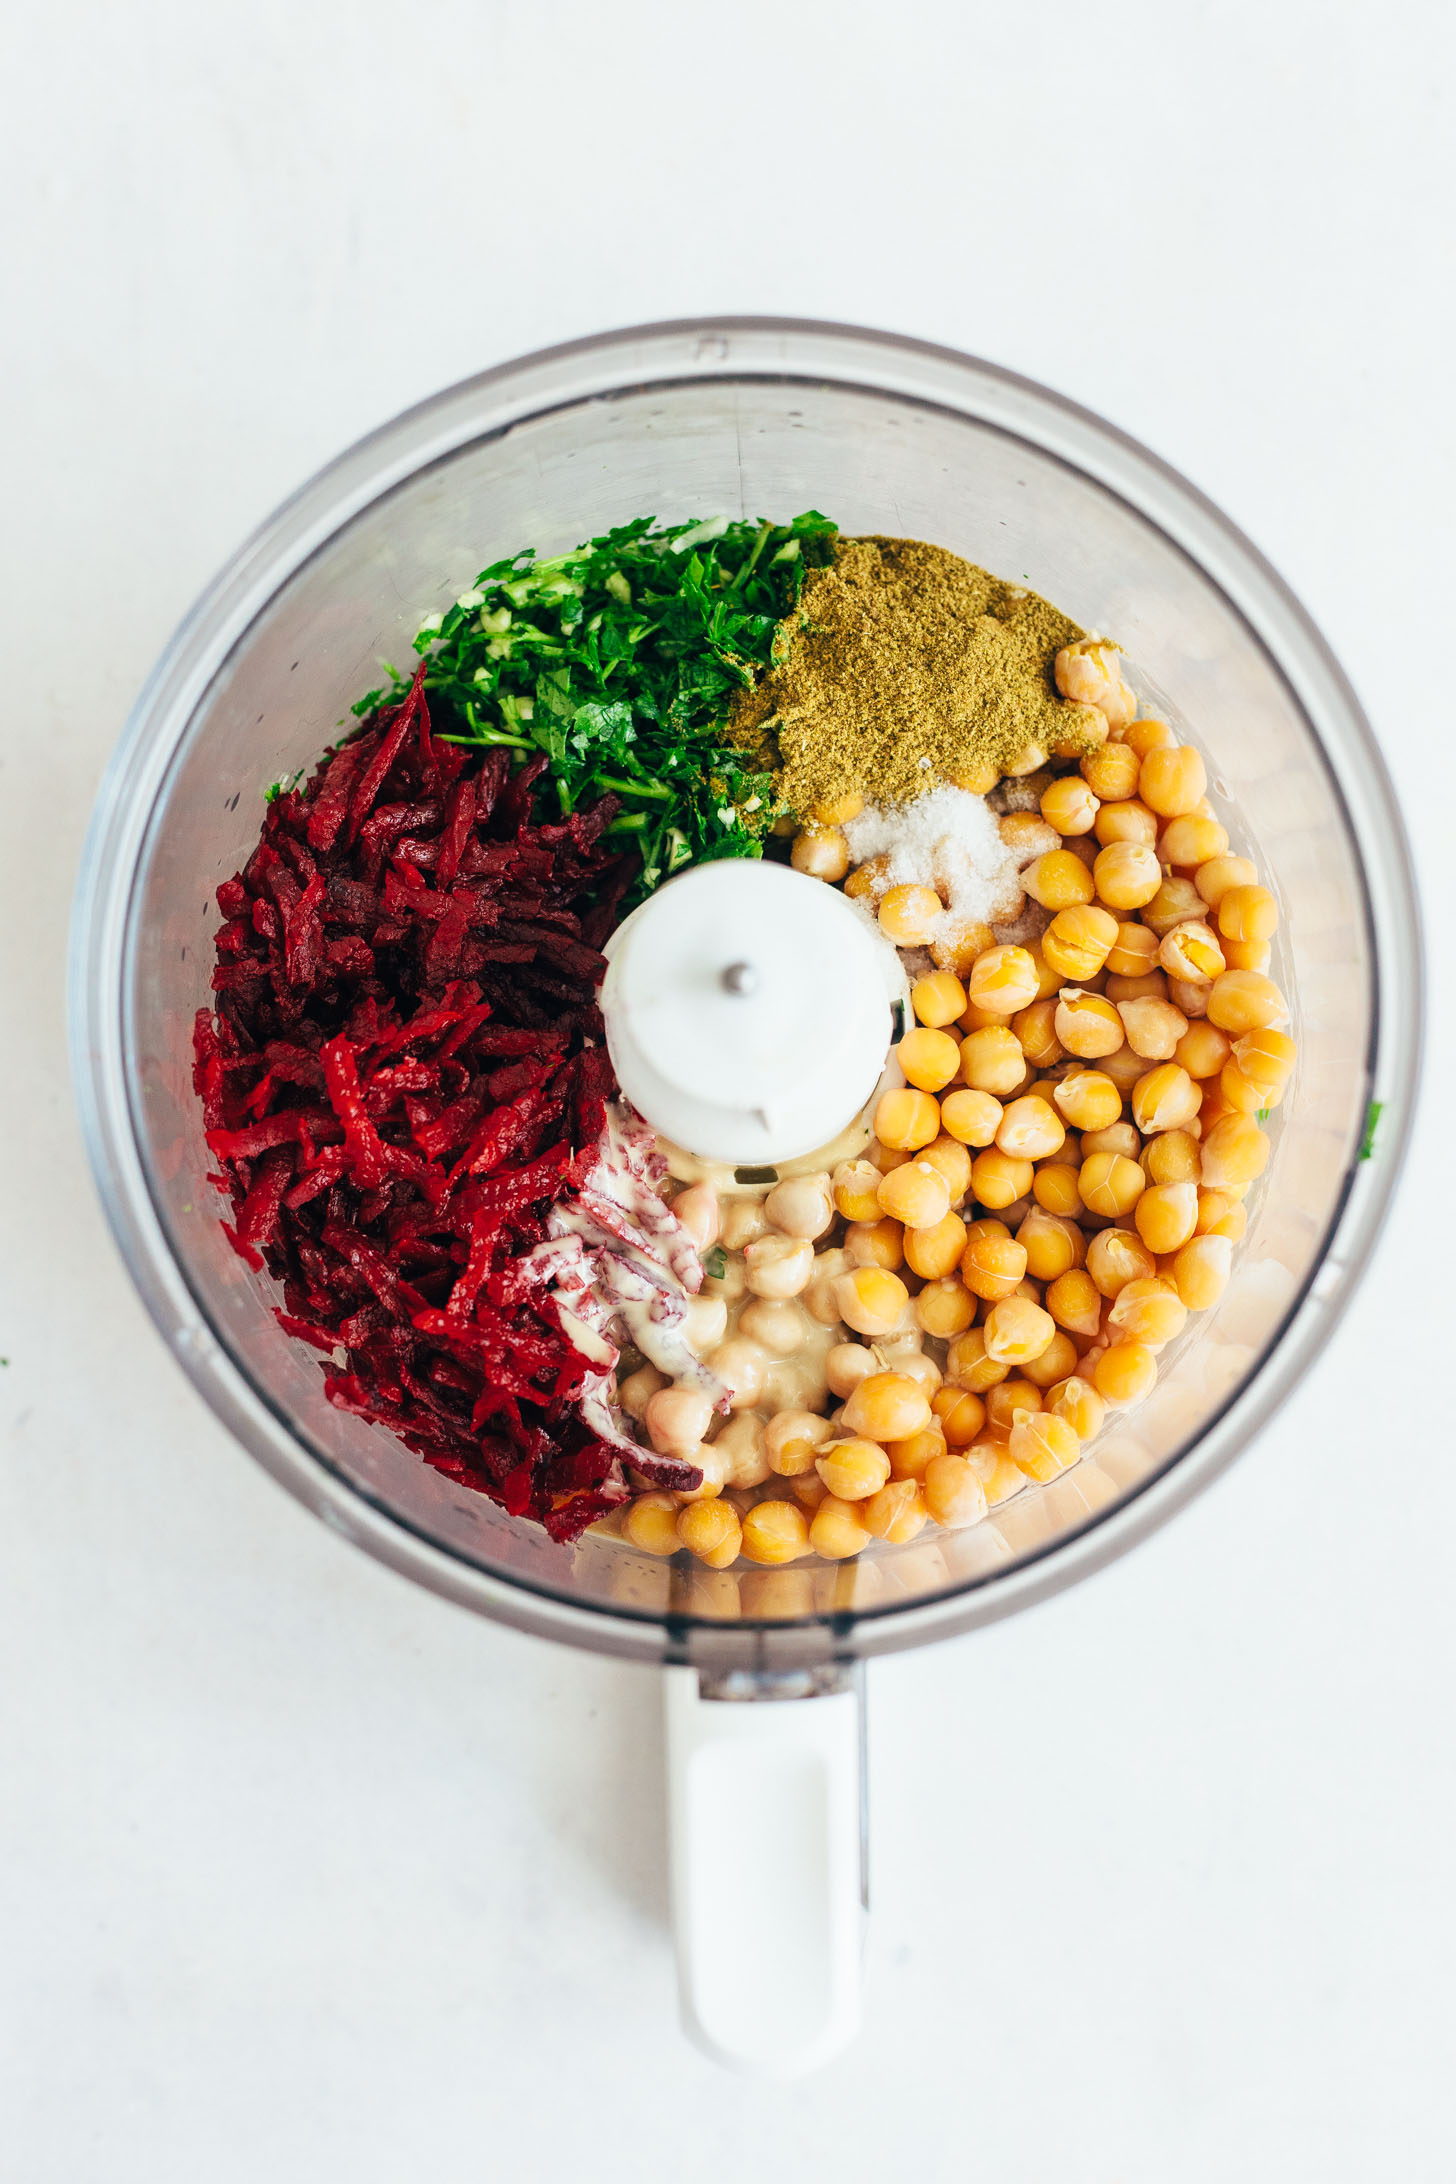 Blender with beets, parsley, cumin, salt, chickpeas, and tahini